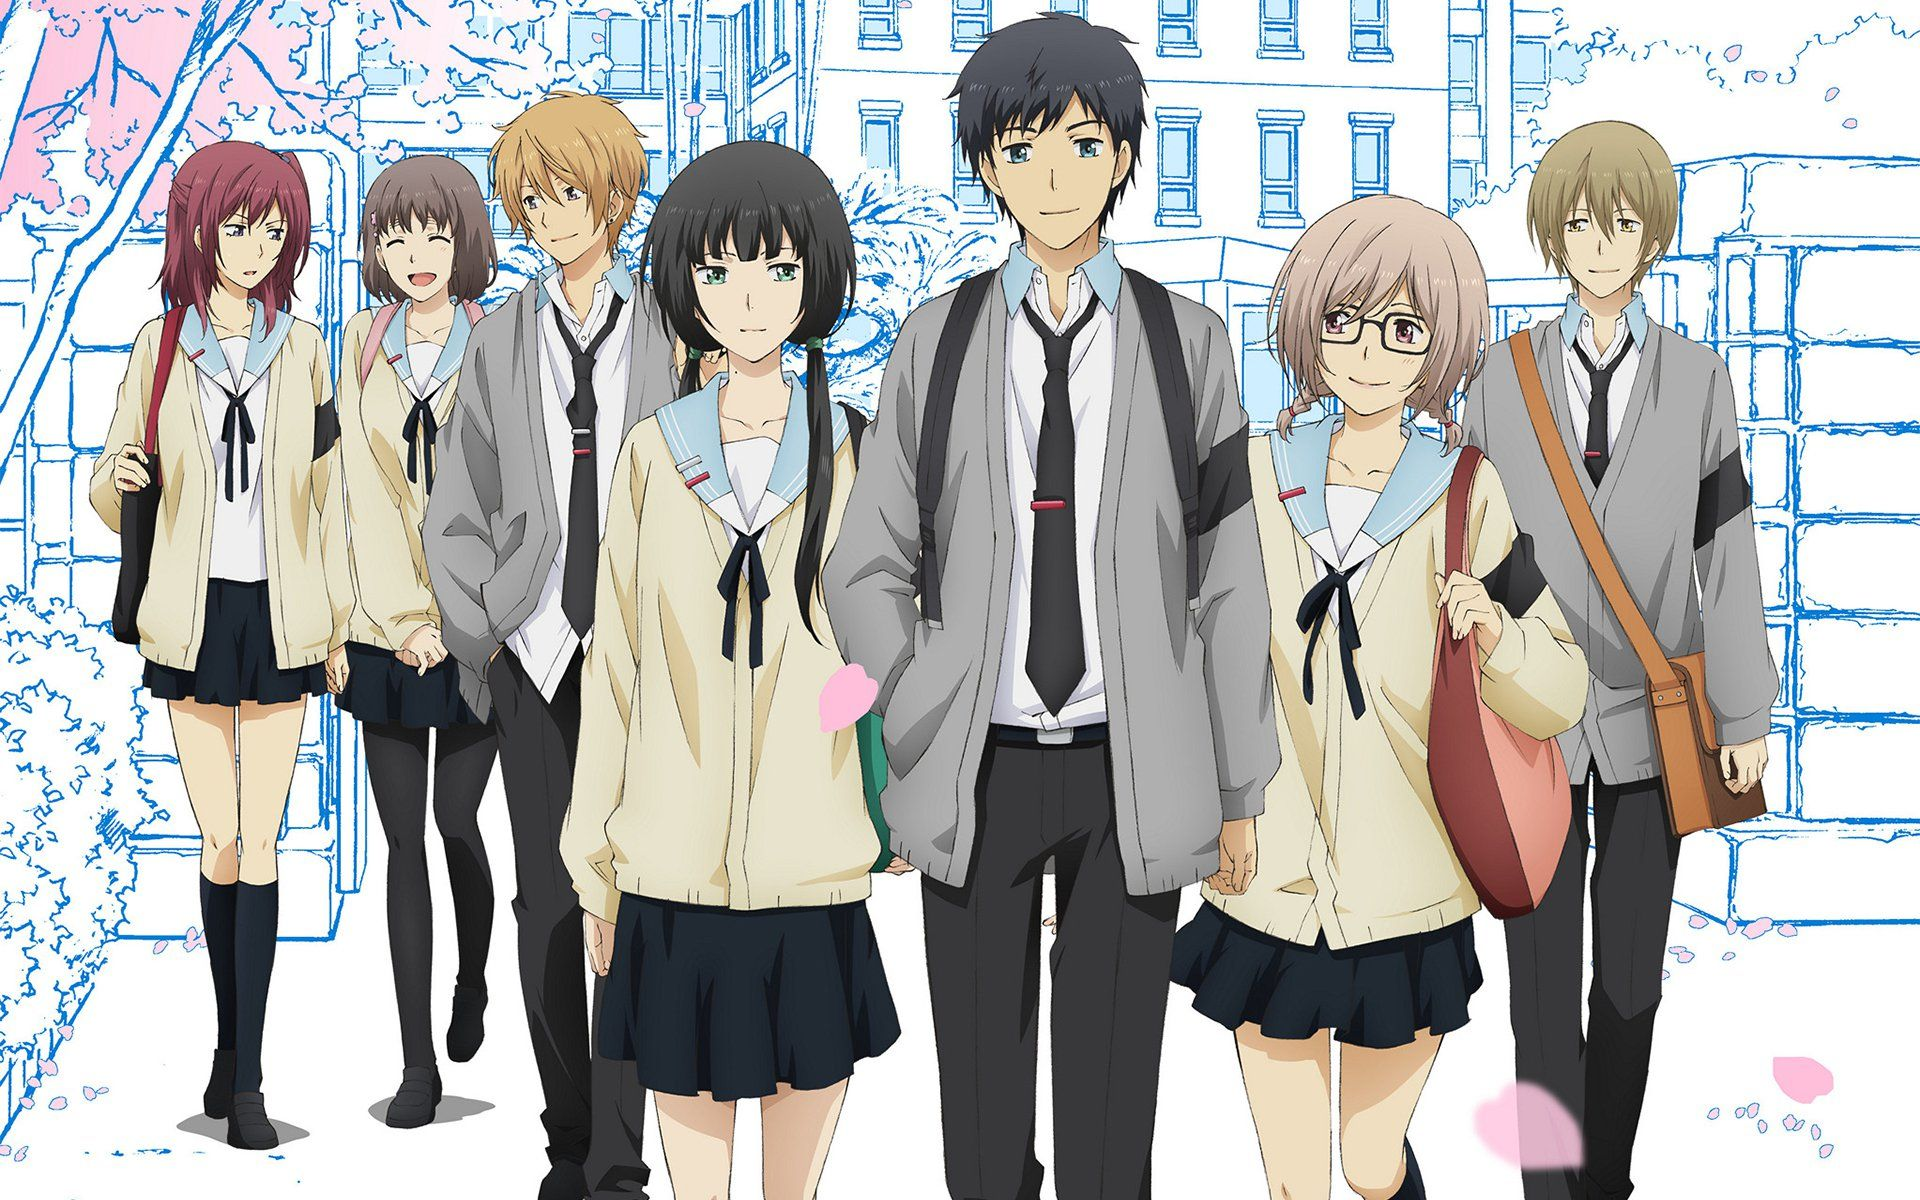 ReLIFE manga to end in March 2018 with Chapter 222